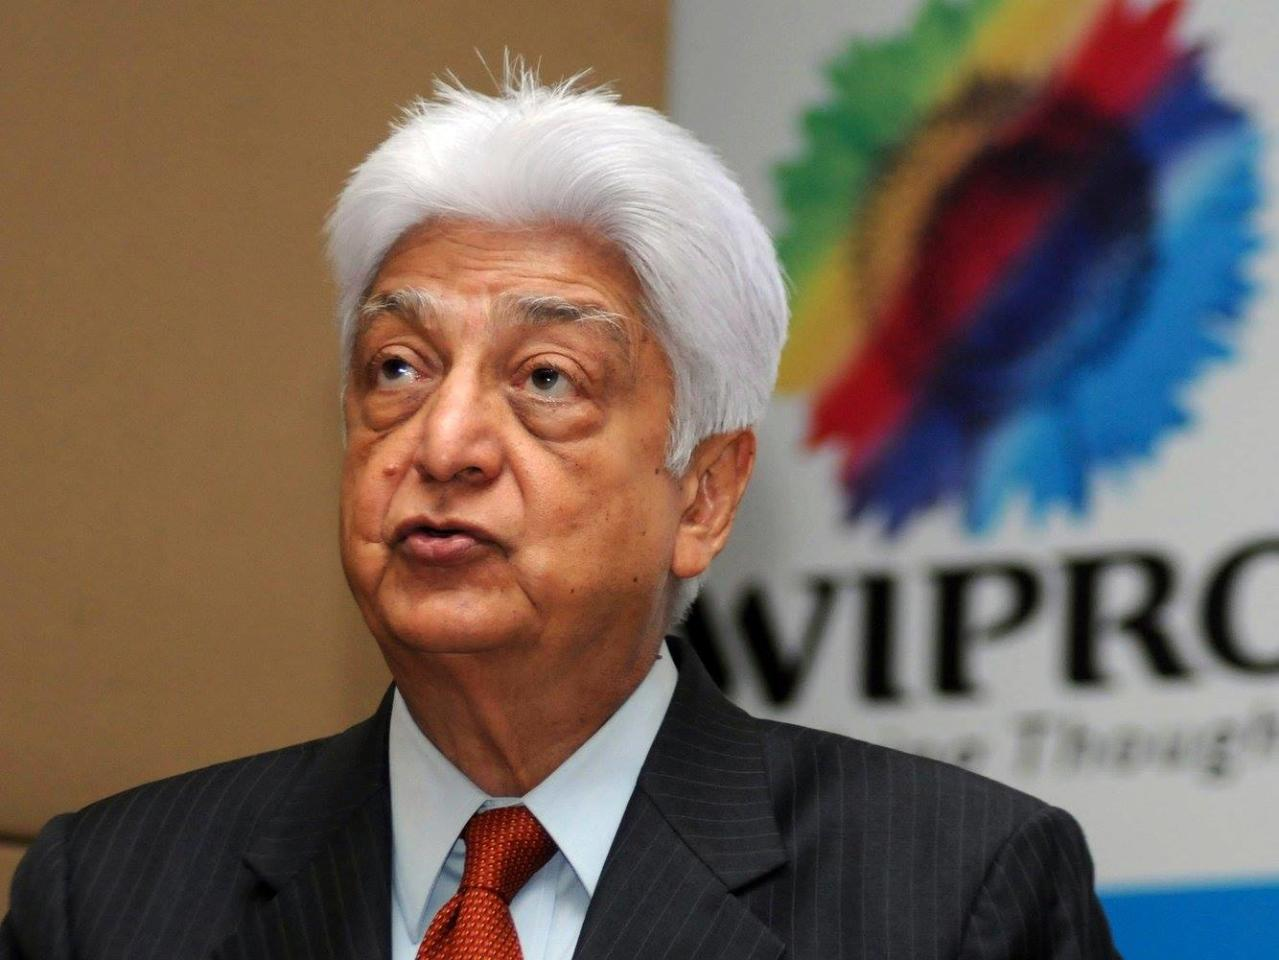 <p>His father, Mohamed Hashem Premji, had a business centered on vegetable products and refined oil. But his untimely death, compelled Azim Premji to take over the charge of his diseased father's business. An engineering student at that time, Premji added many new dimensions to the company and ventured into the hardware and software market when the then Indian government expelled IBM from India, in 1979. <br />FUN FACT: Did you know Jinnah had invited Premji senior to settle in Pakistan, but despite being a Muslim, he chose to stay back in India? </p>